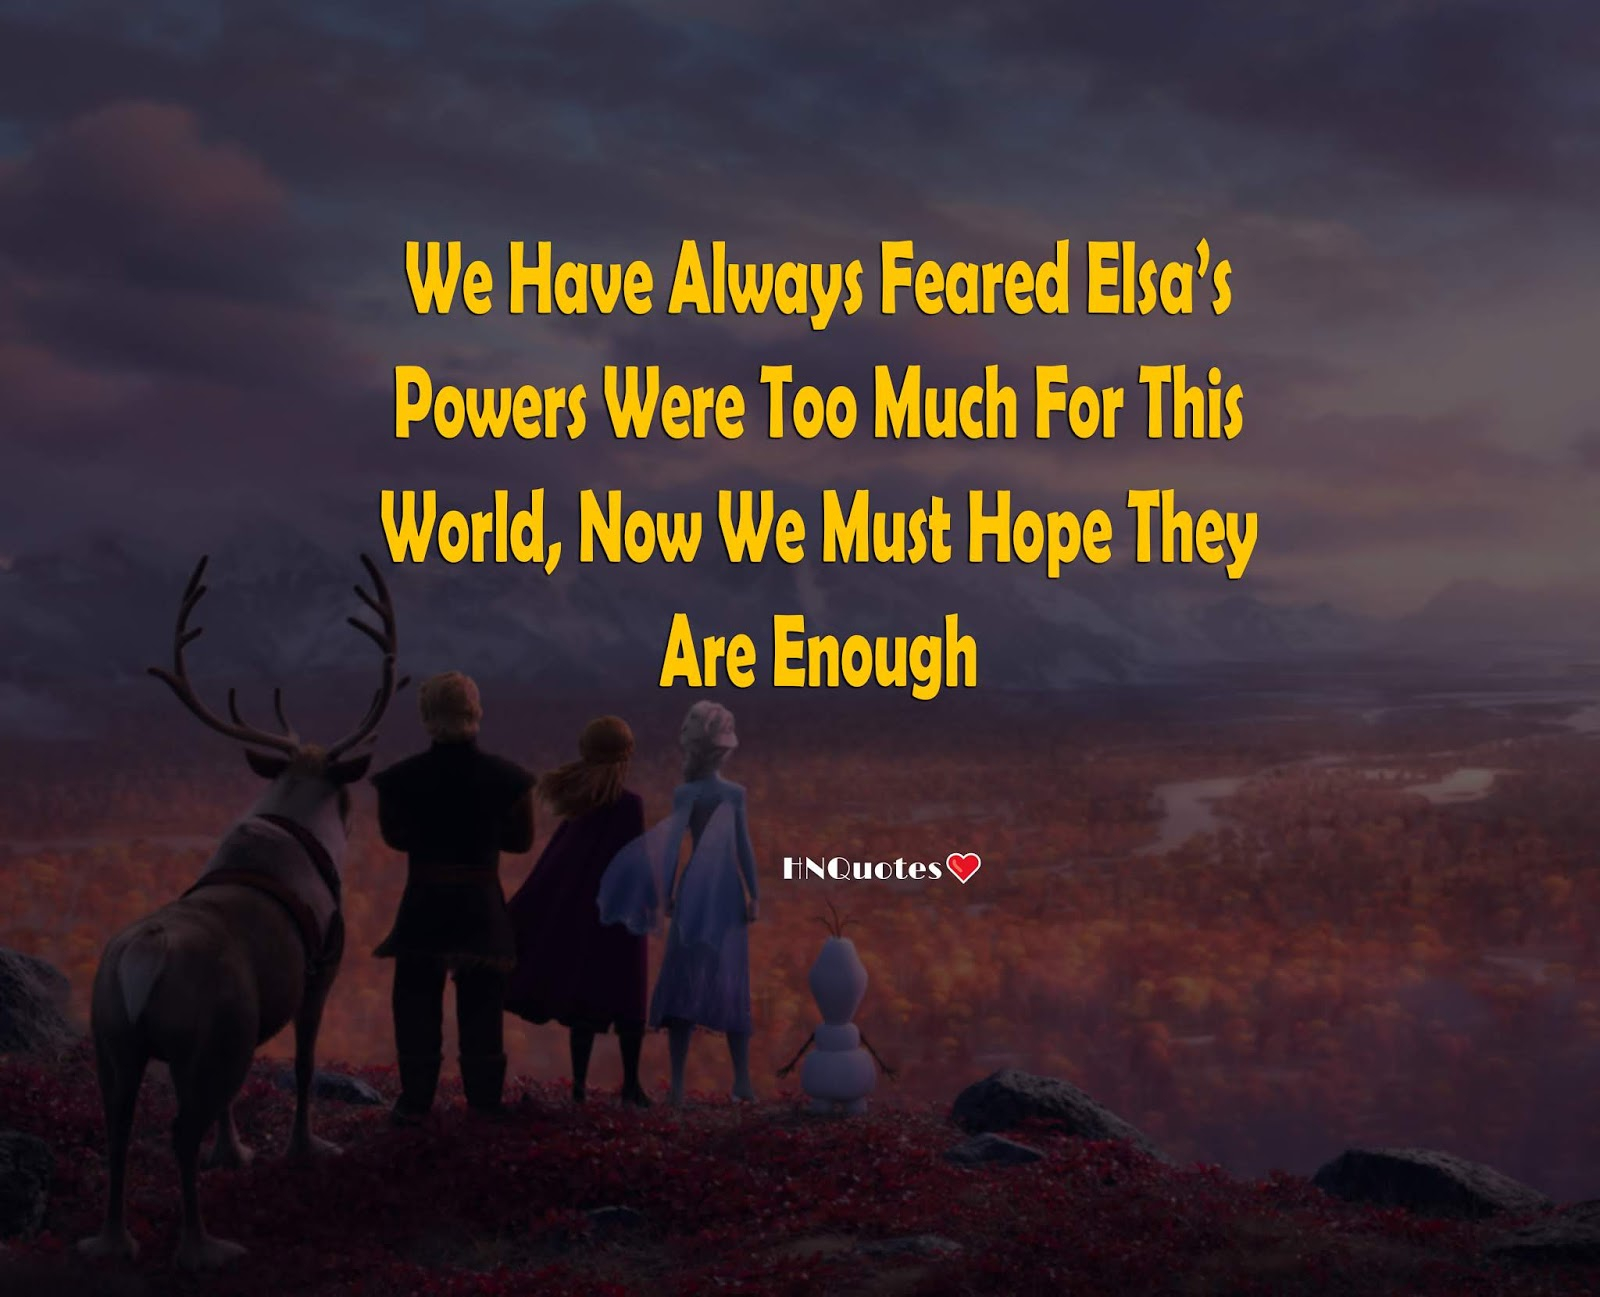 Frozen-2-Movie-Disney-Best-Quotes-Funny-Motivational-Love-Beautiful-Lines-9-[HNQuotes]